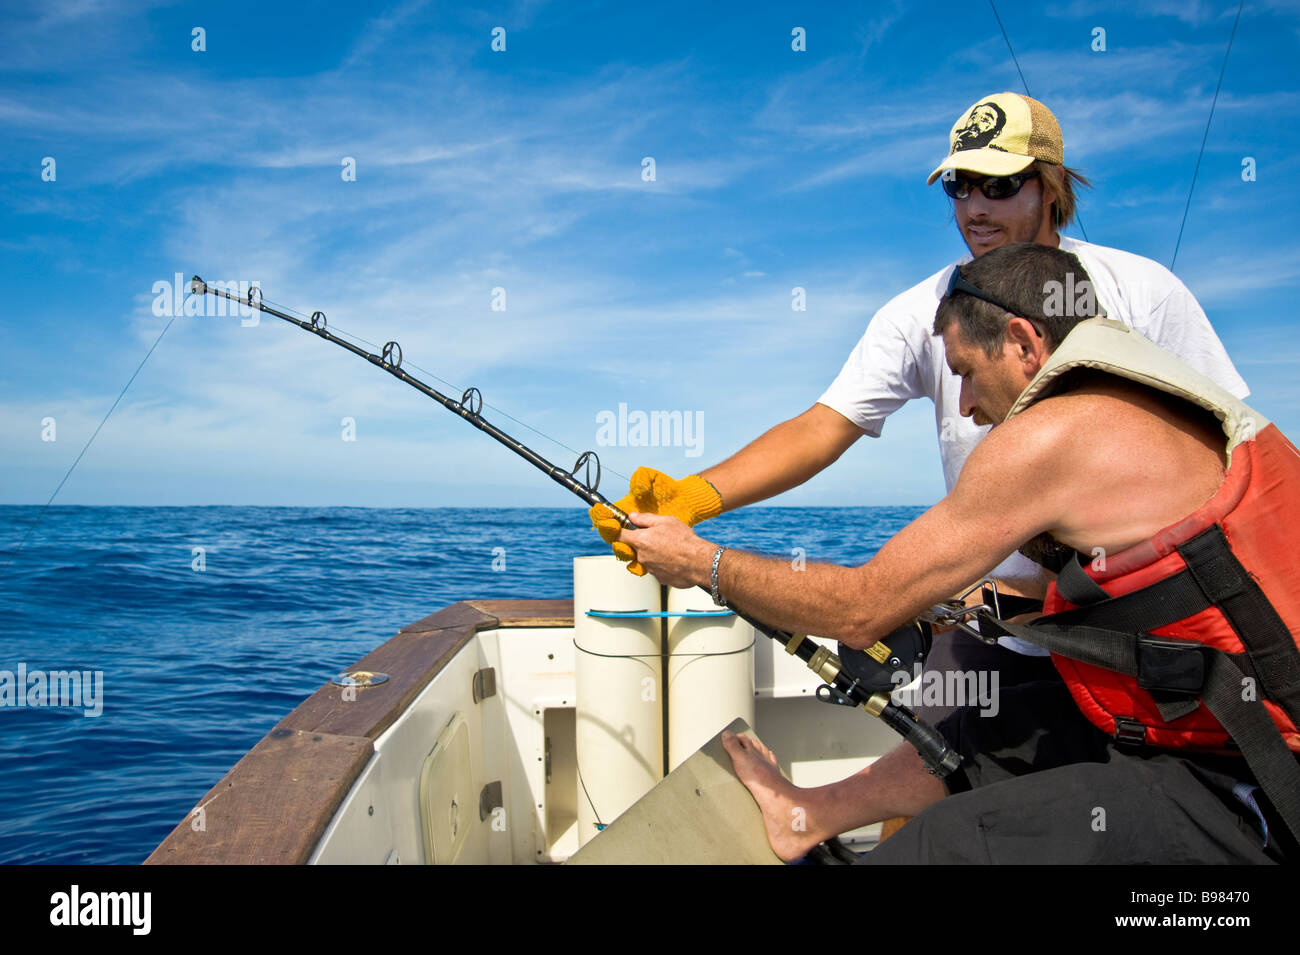 Big game fishing, fishermen on fishing boat Saint Gilles La Réunion France | Hochseeangeln, Fischer beim Drill, - Stock Image